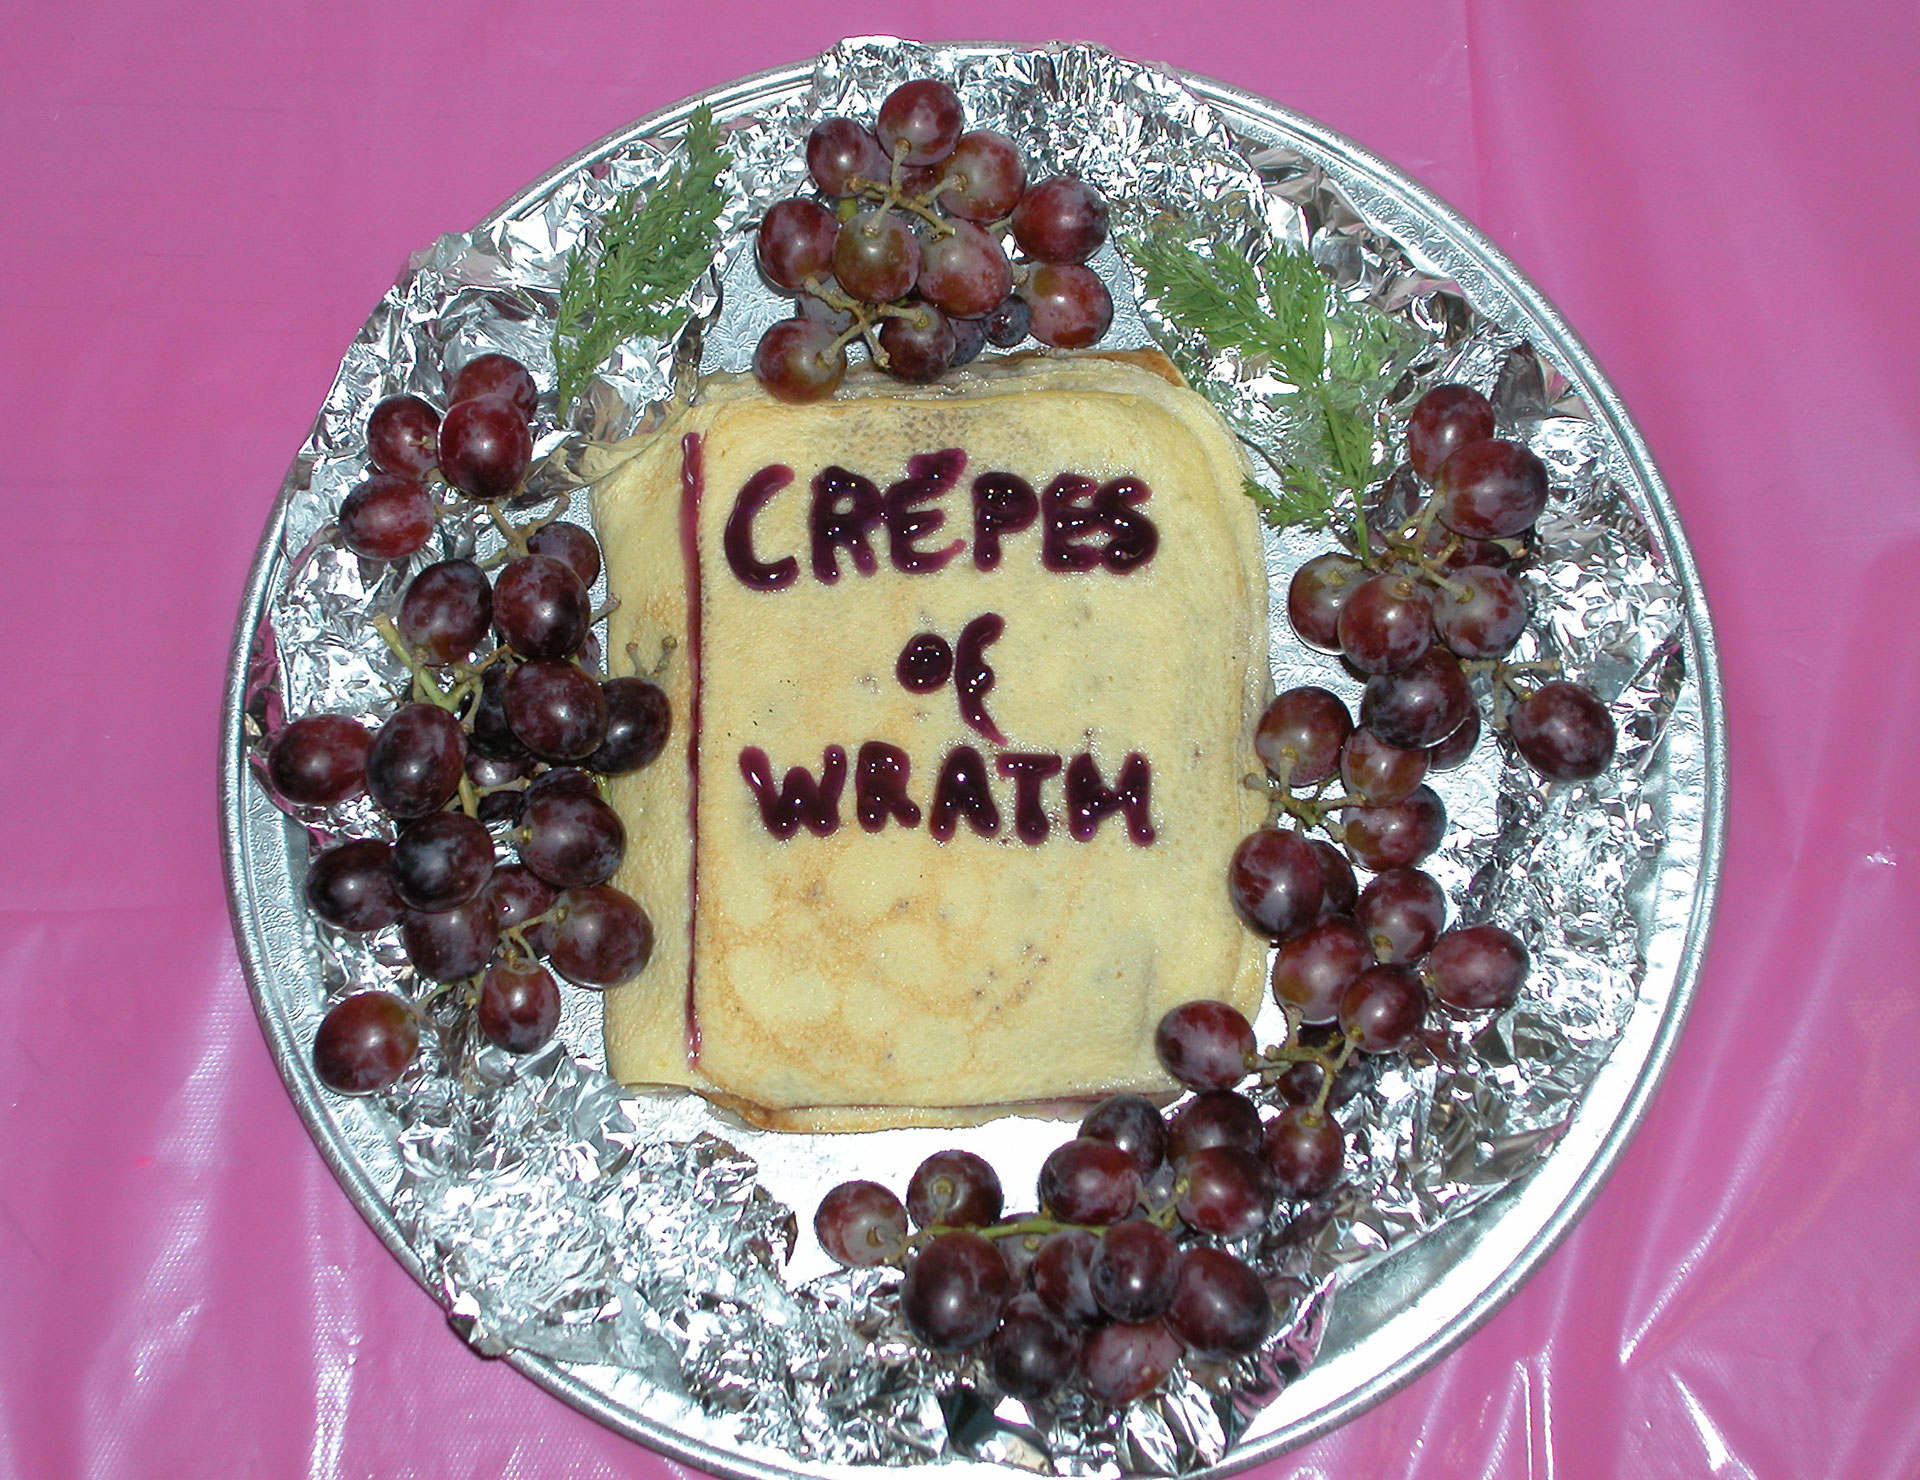 """Crepes of Wrath"" by Eve Reid; 2007 Edible Book Festivall entry"